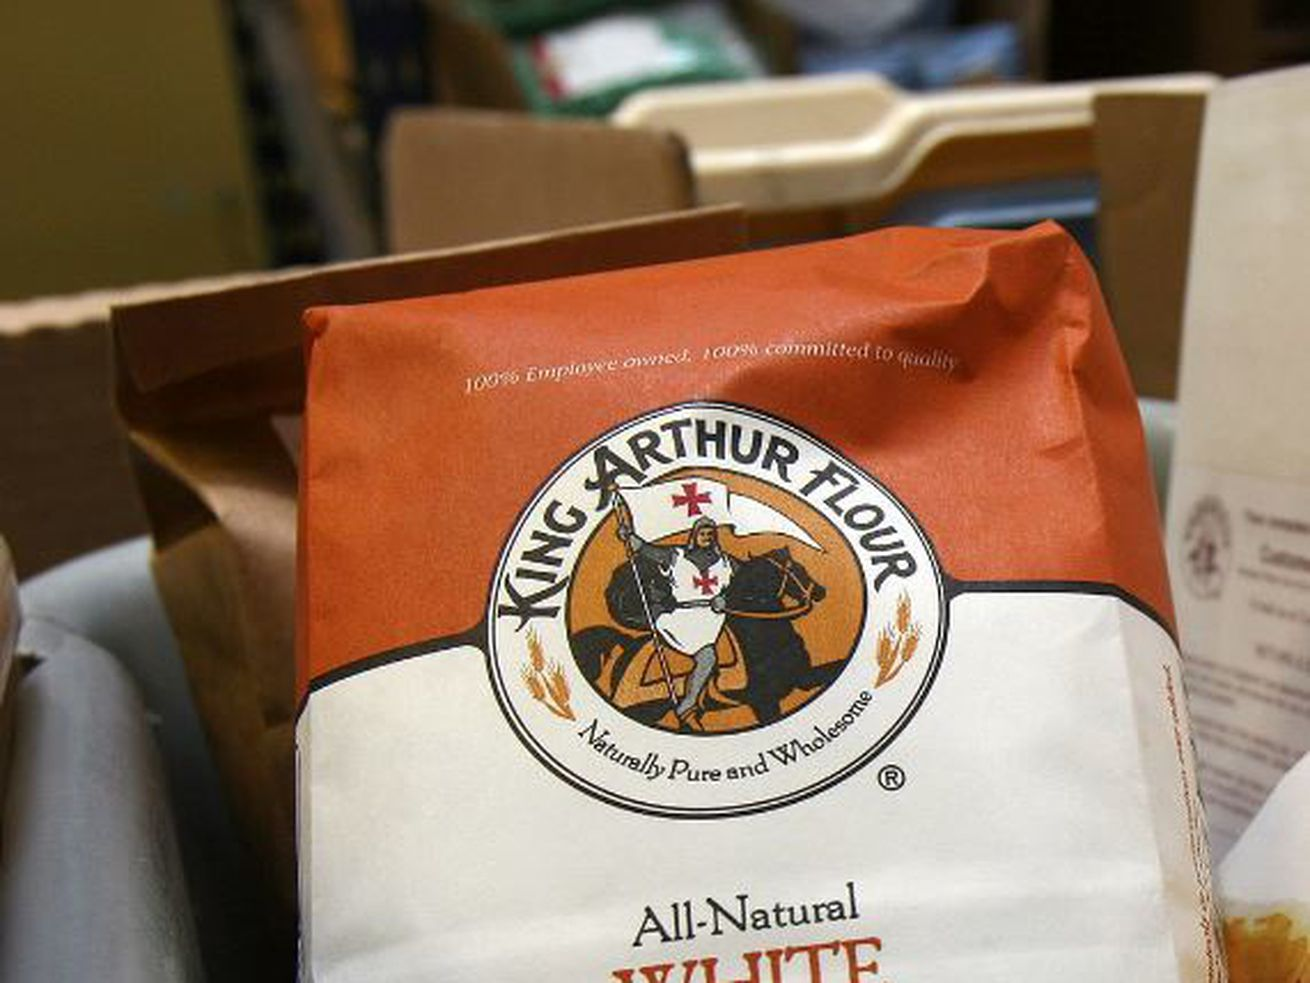 A bag of White Whole Wheat Flour awaits shipping from King Arthur Flour's facility in White River Junction, Vermont on Tuesday May 9, 2006.